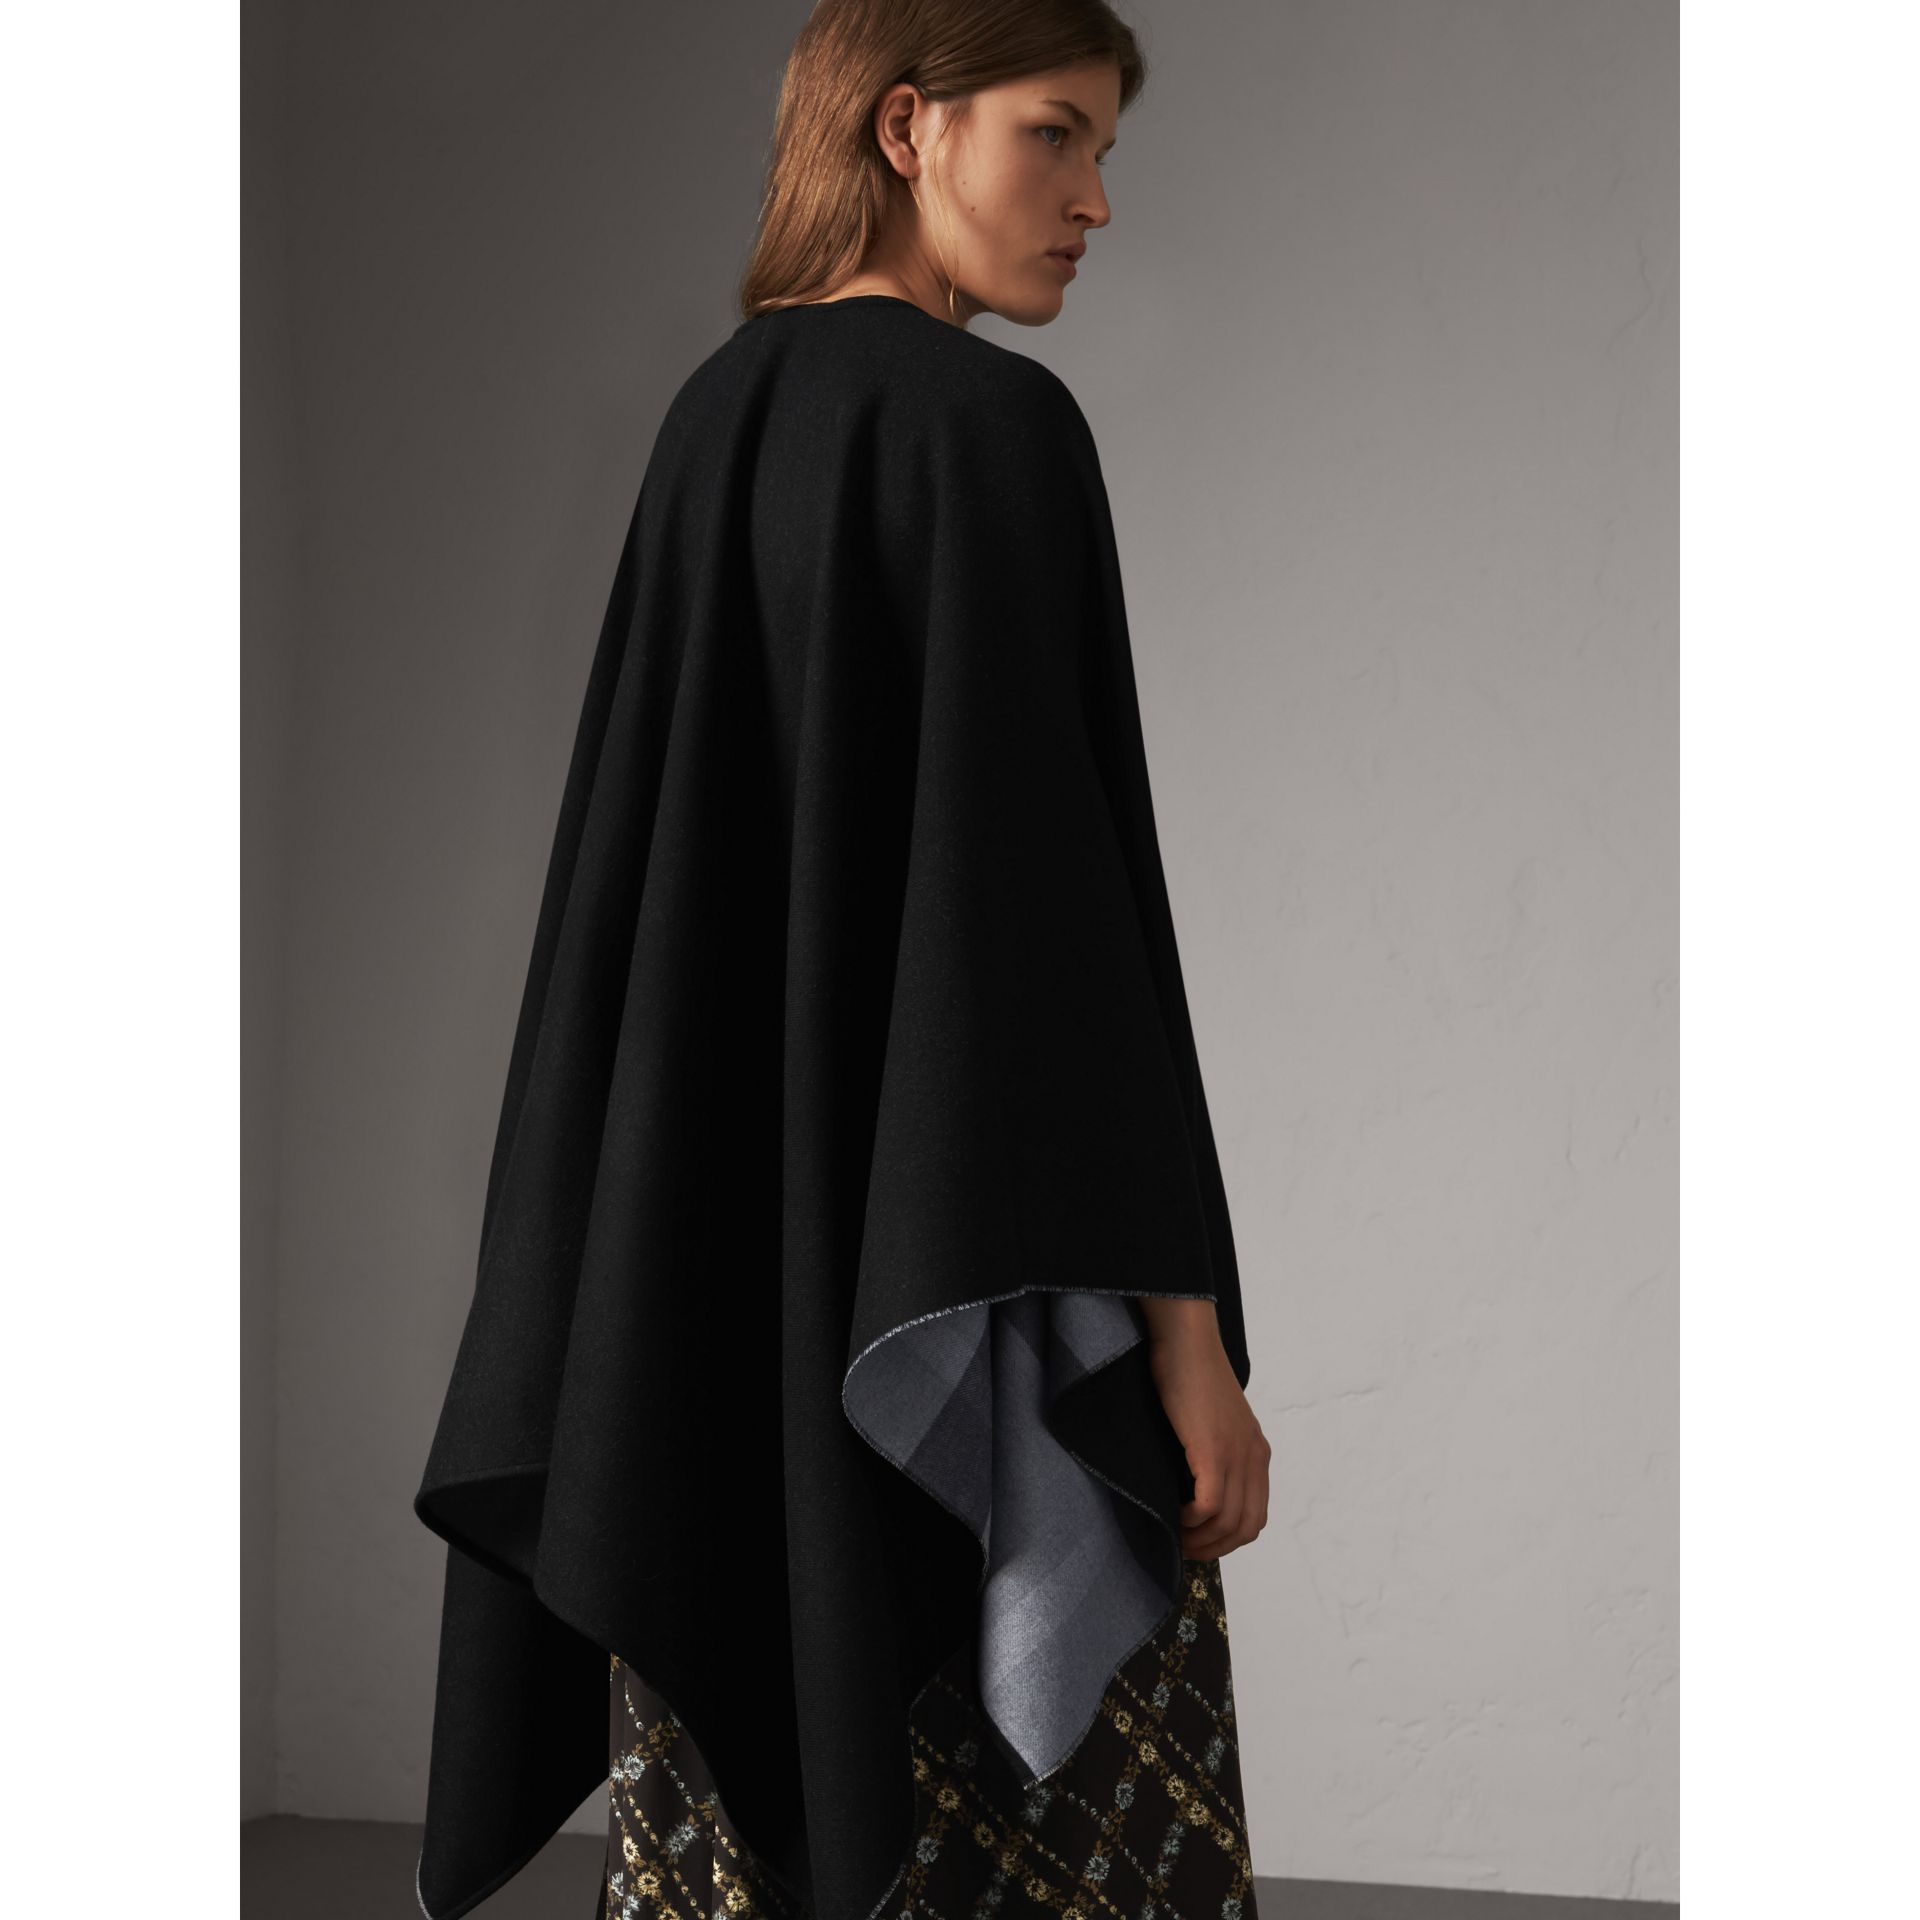 Reversible Check Merino Wool Poncho in Charcoal - Women | Burberry - gallery image 3